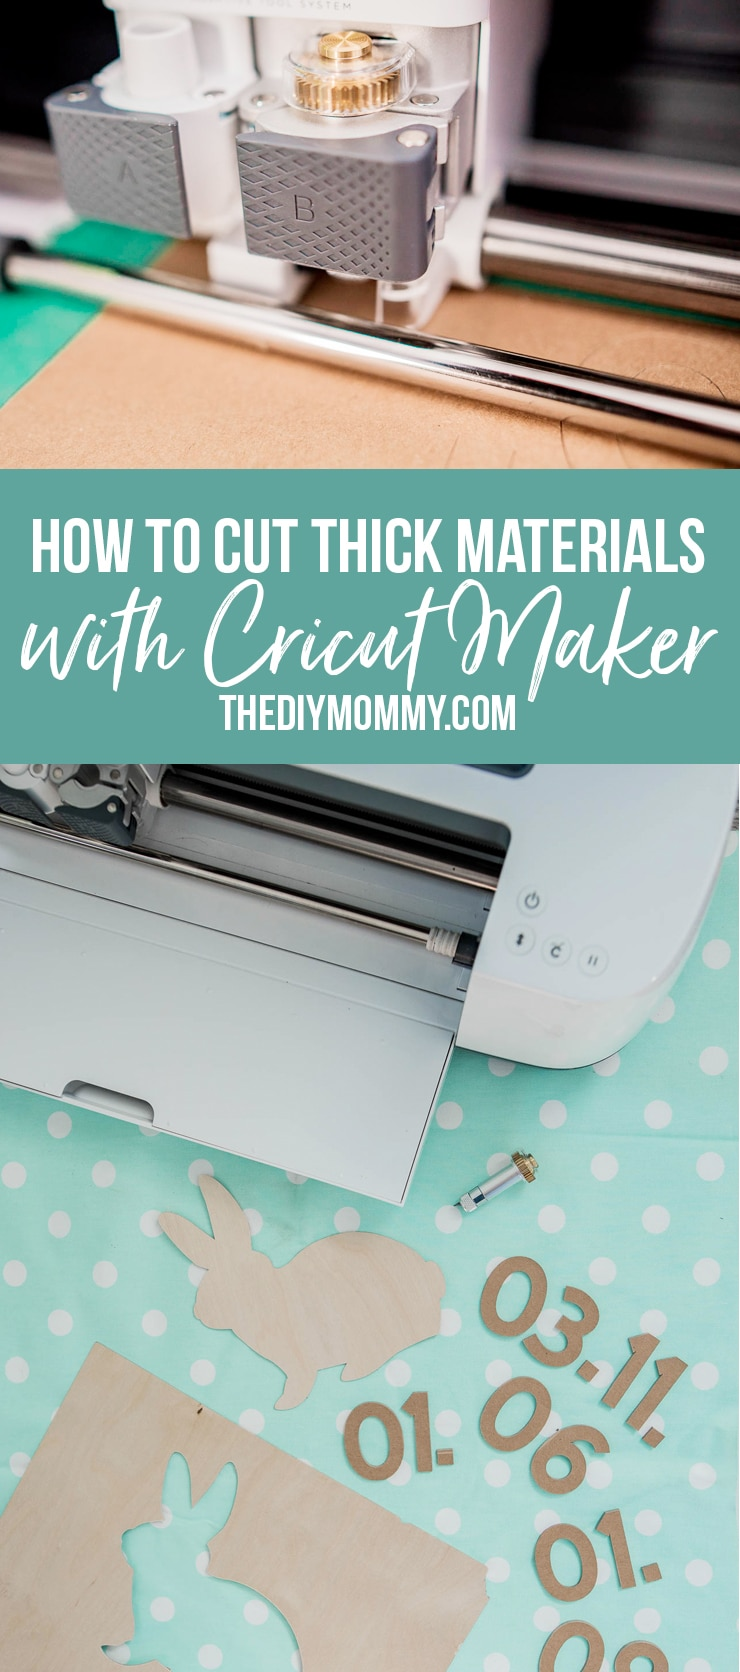 Learn how to cut thick material with the Cricut Maker knife blade